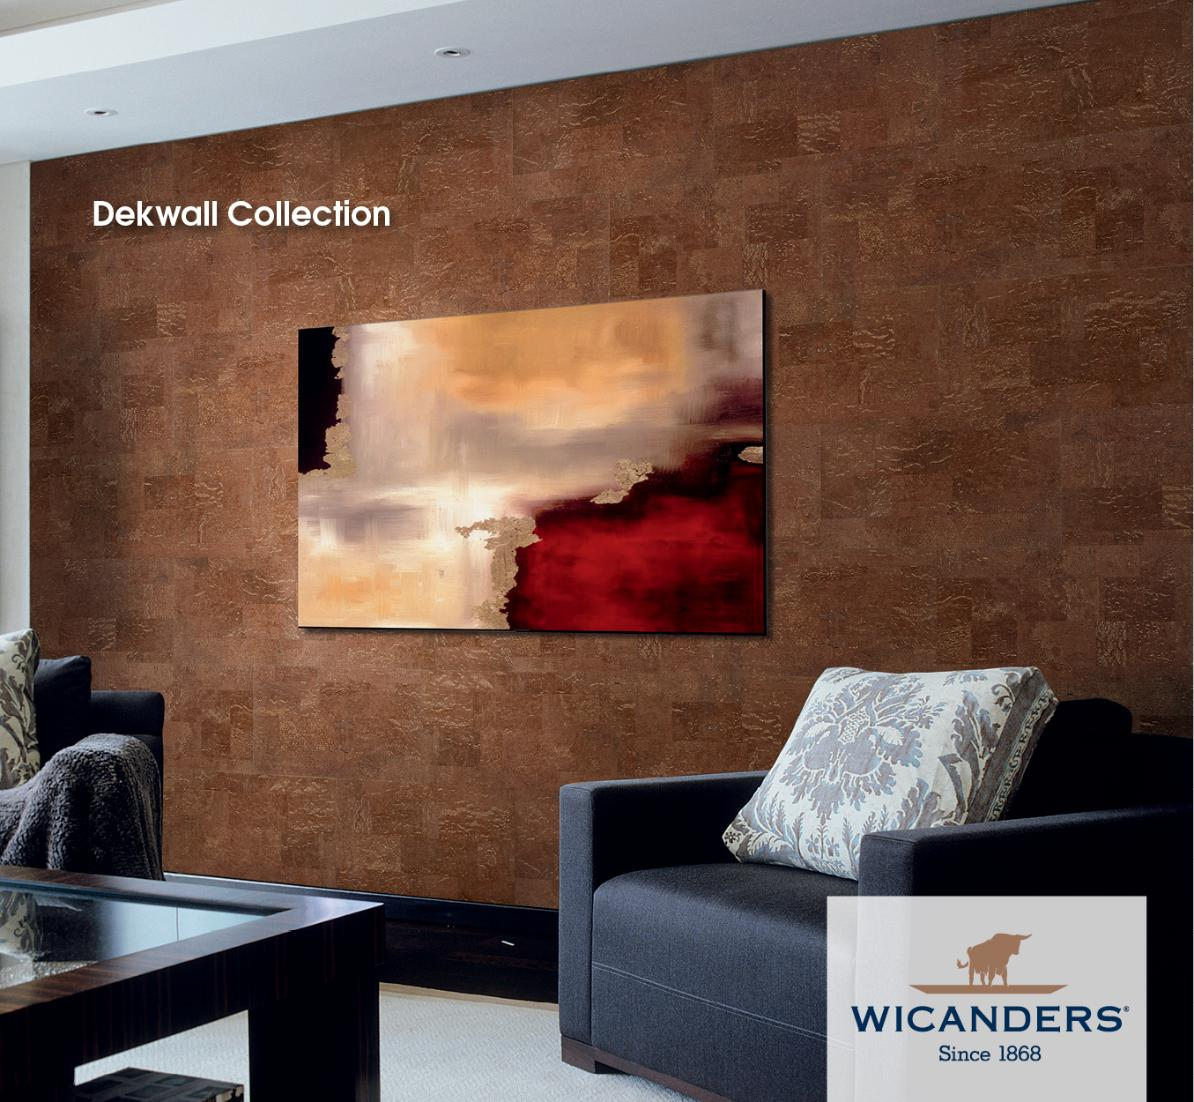 #WicandersWednesday ft. Dekwall Collection. Learn more at  https:// goo.gl/7enZaR  &nbsp;   #Cork #WallTile #Walldecor #CorkWall #FloorsFirst #Canada<br>http://pic.twitter.com/p57ea6BI4P